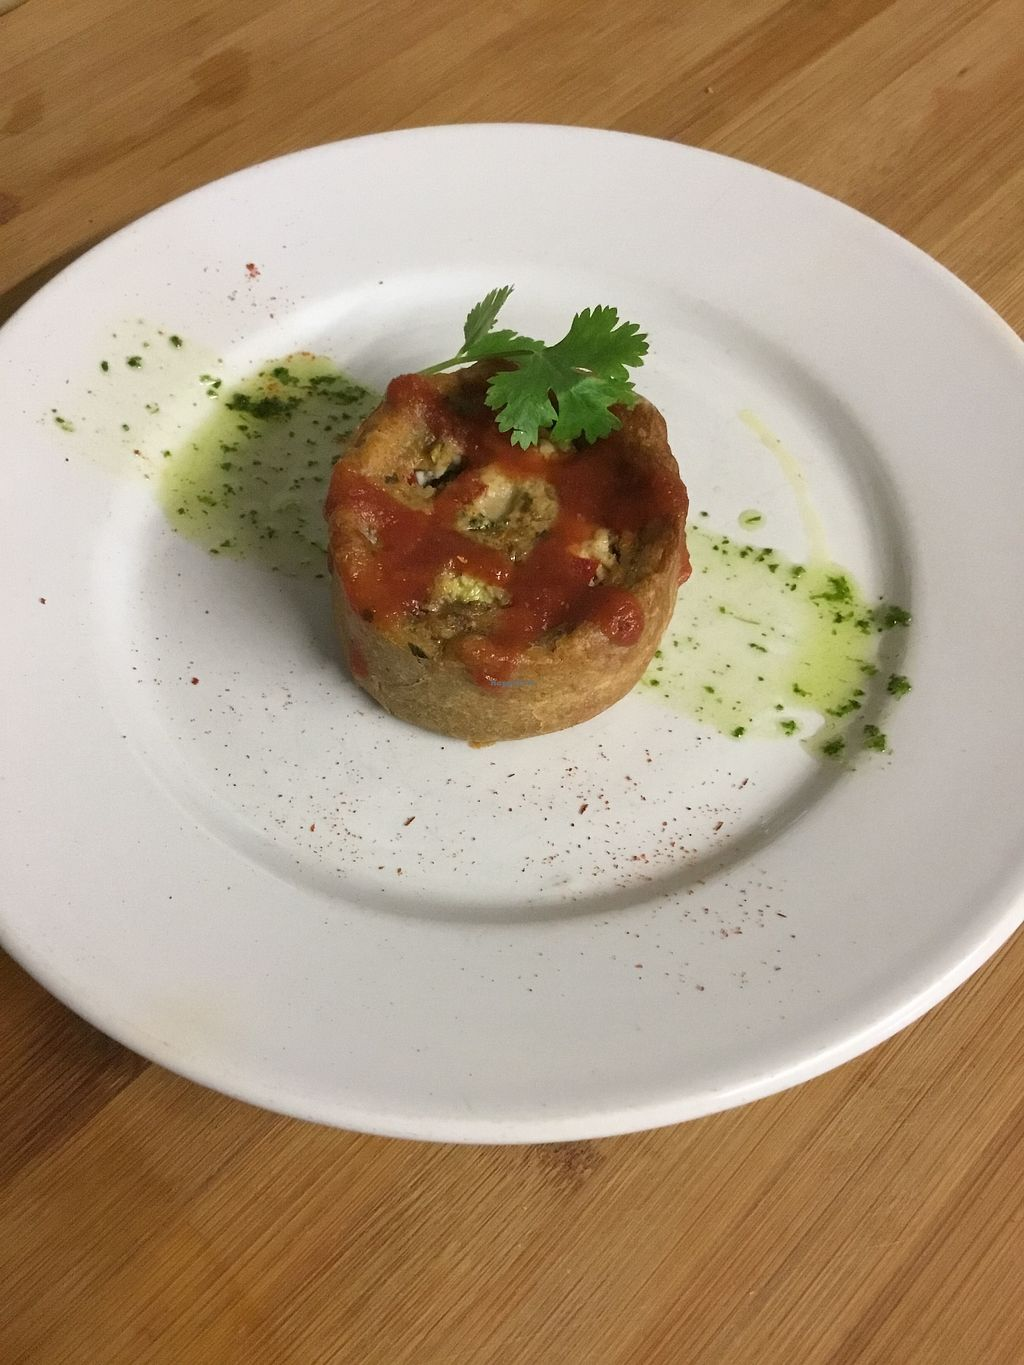 """Photo of Vegan Resto au Galoupio  by <a href=""""/members/profile/Tofuviking"""">Tofuviking</a> <br/>This mini vegetable tarte is like quiche. gluten free pastry, with courgette, aubergine, smoky tofu, capsicums, and homemade bbq sauce. such a devine little thing.   <br/> November 5, 2017  - <a href='/contact/abuse/image/71914/322313'>Report</a>"""